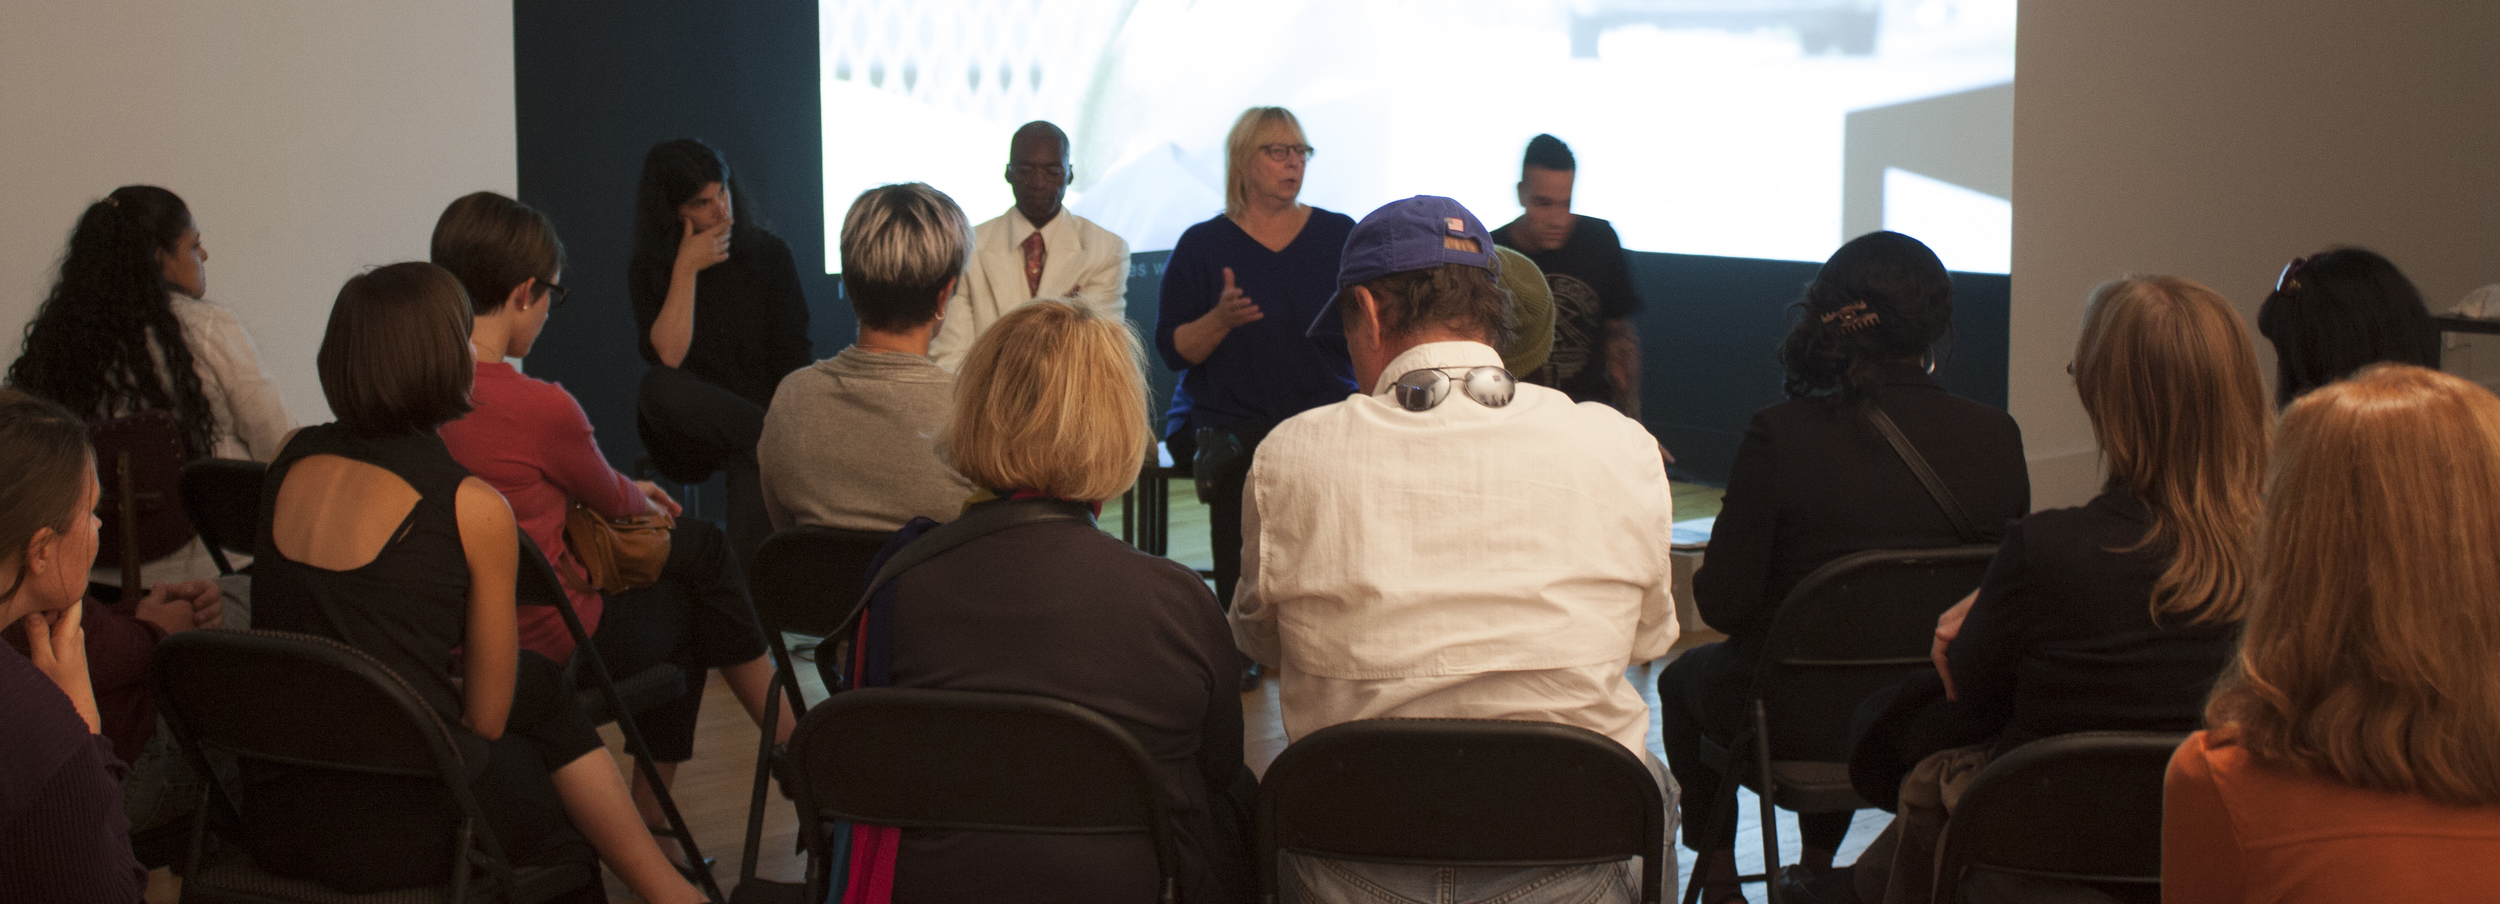 Panel discussion hosted by Edwin gallery, Detroit, during a preview exhibition of Natural Life, Fall 2013